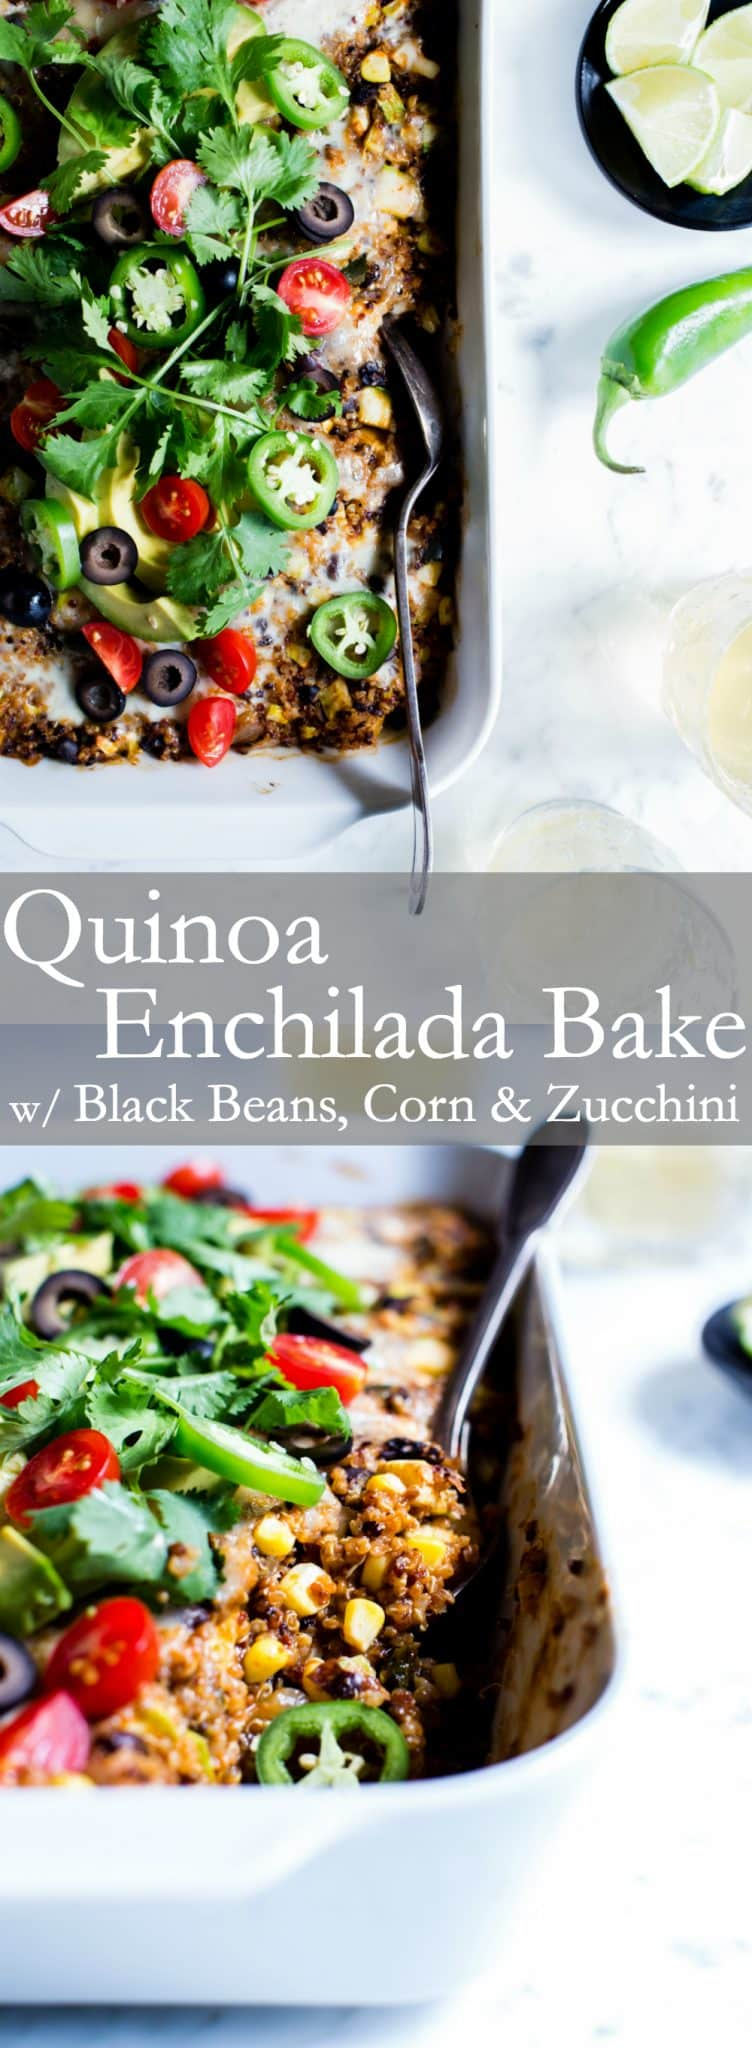 Chock full of veggies, black beans, cheese and homemade enchilada sauce, thisQuinoa Enchilada Bake with Black Beans is a fabulous casserole to feed a small crowd. It's freezer friendly and makes for easy leftovers. #vegetarian #glutenfree #MexicanFood #Casserole #QuinoaBake